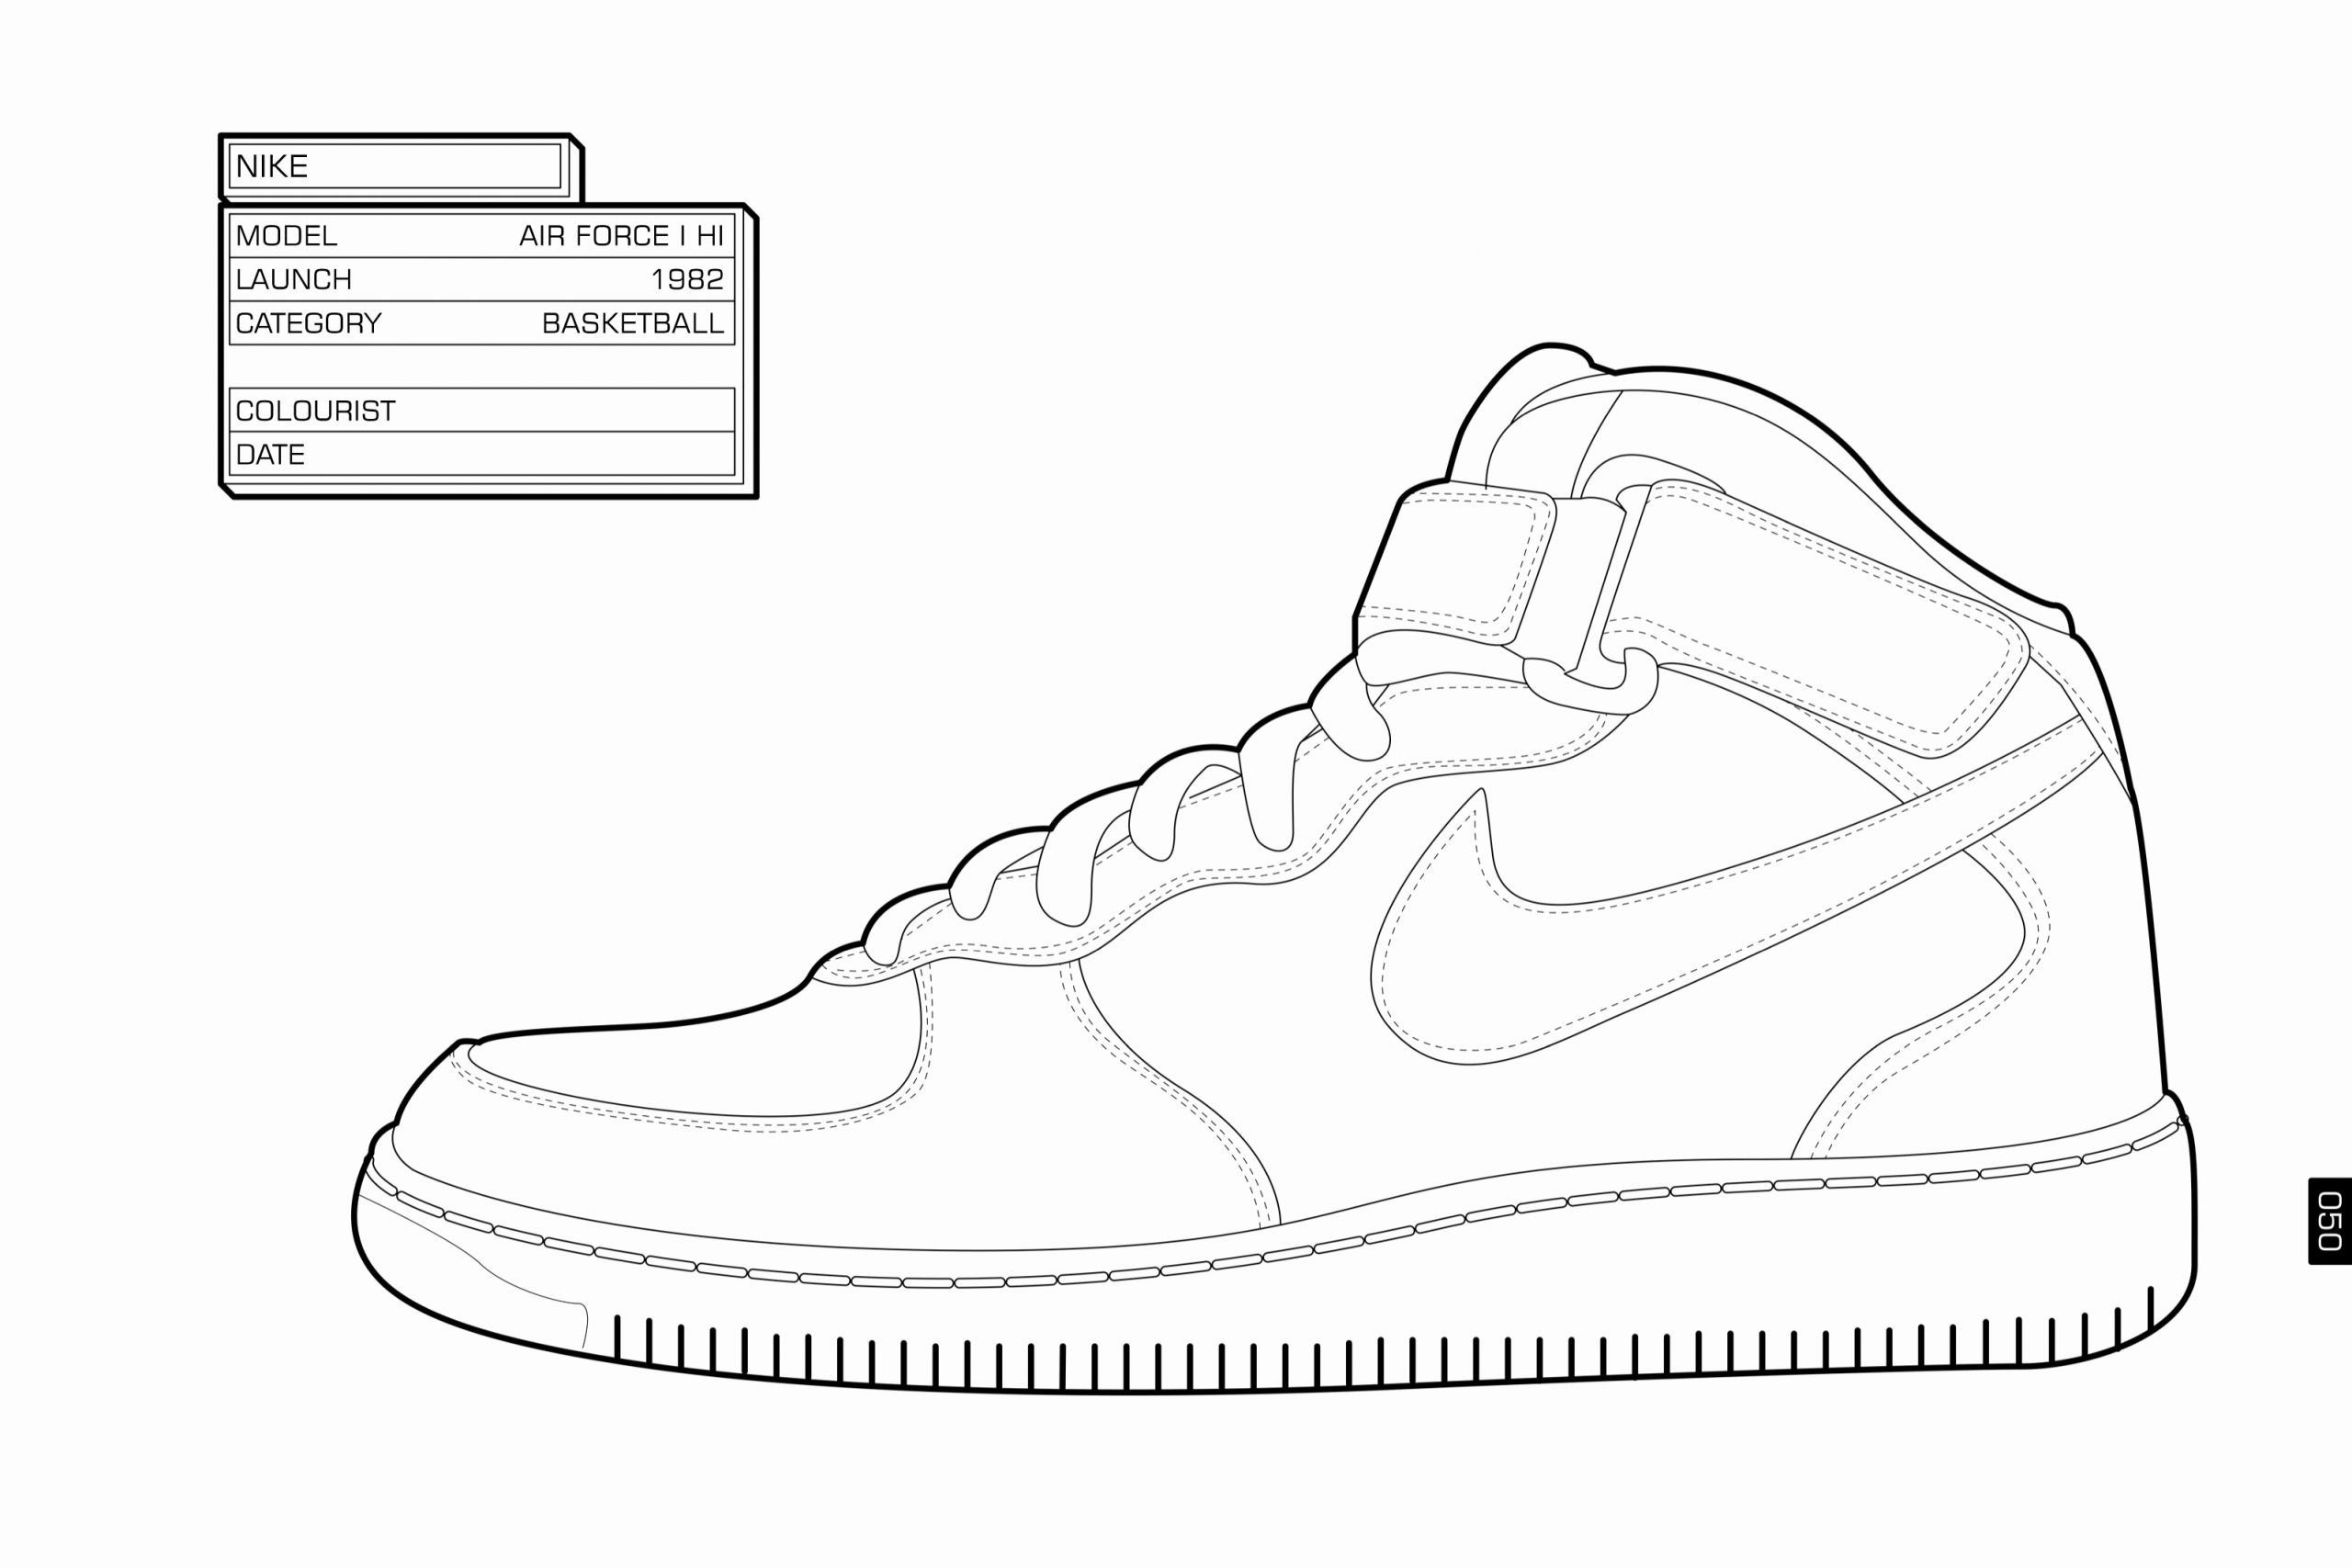 Jordan Shoe Coloring Book Luxury Nike Coloring Pages Coloring Home Shoes Drawing Cool Nike Shoes Pictures Of Jordans